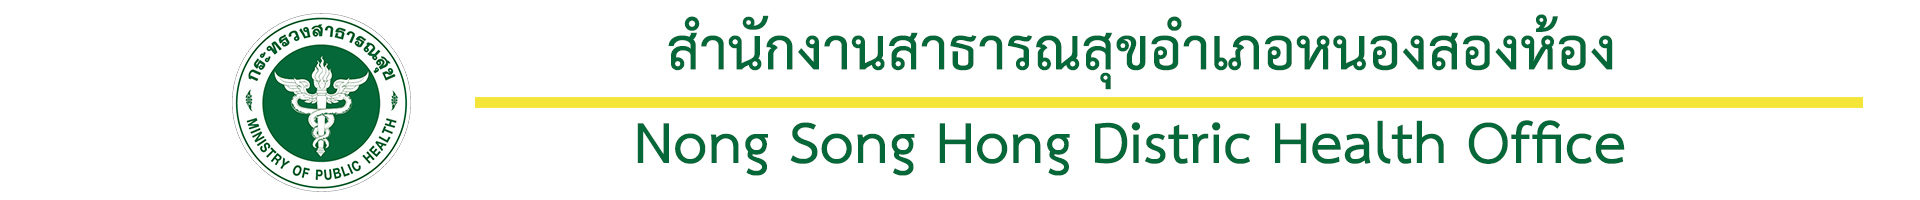 Nong Song Hong Distric Health Office